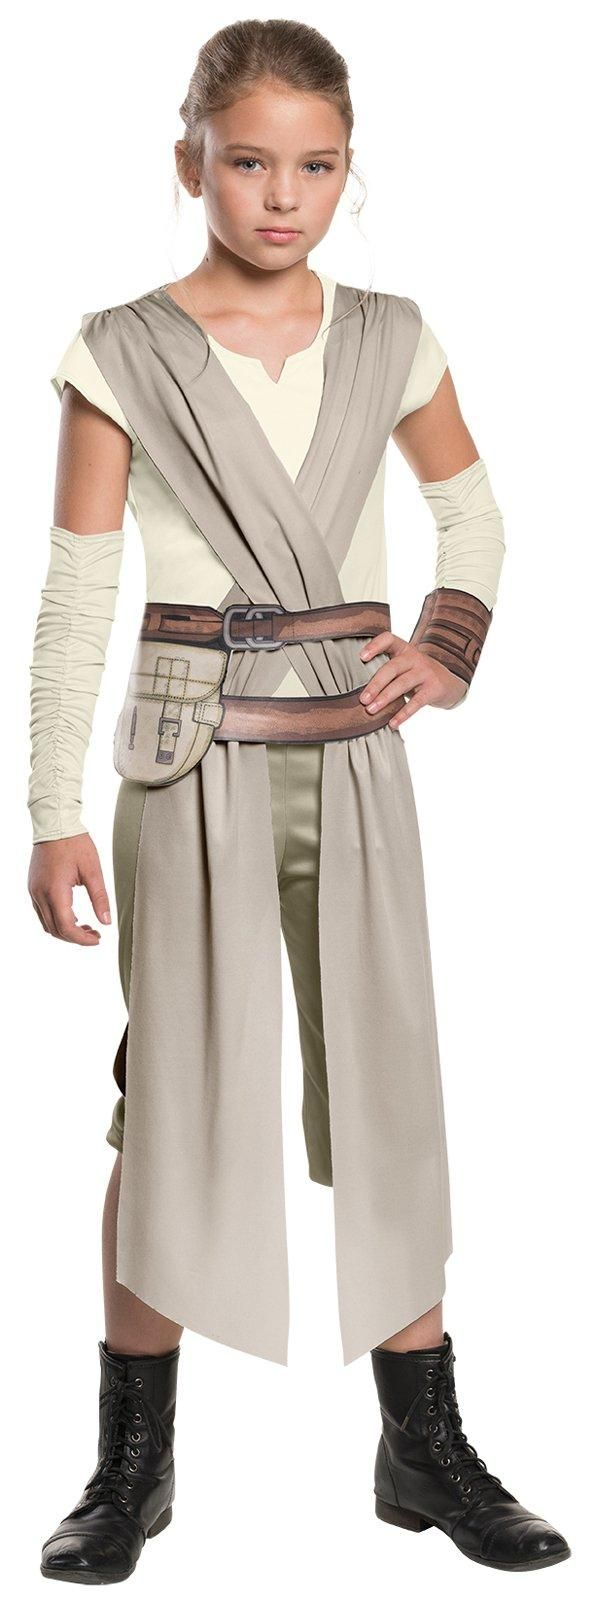 Star Wars: The Force Awakens - Classic Rey Costume For Girls from ...